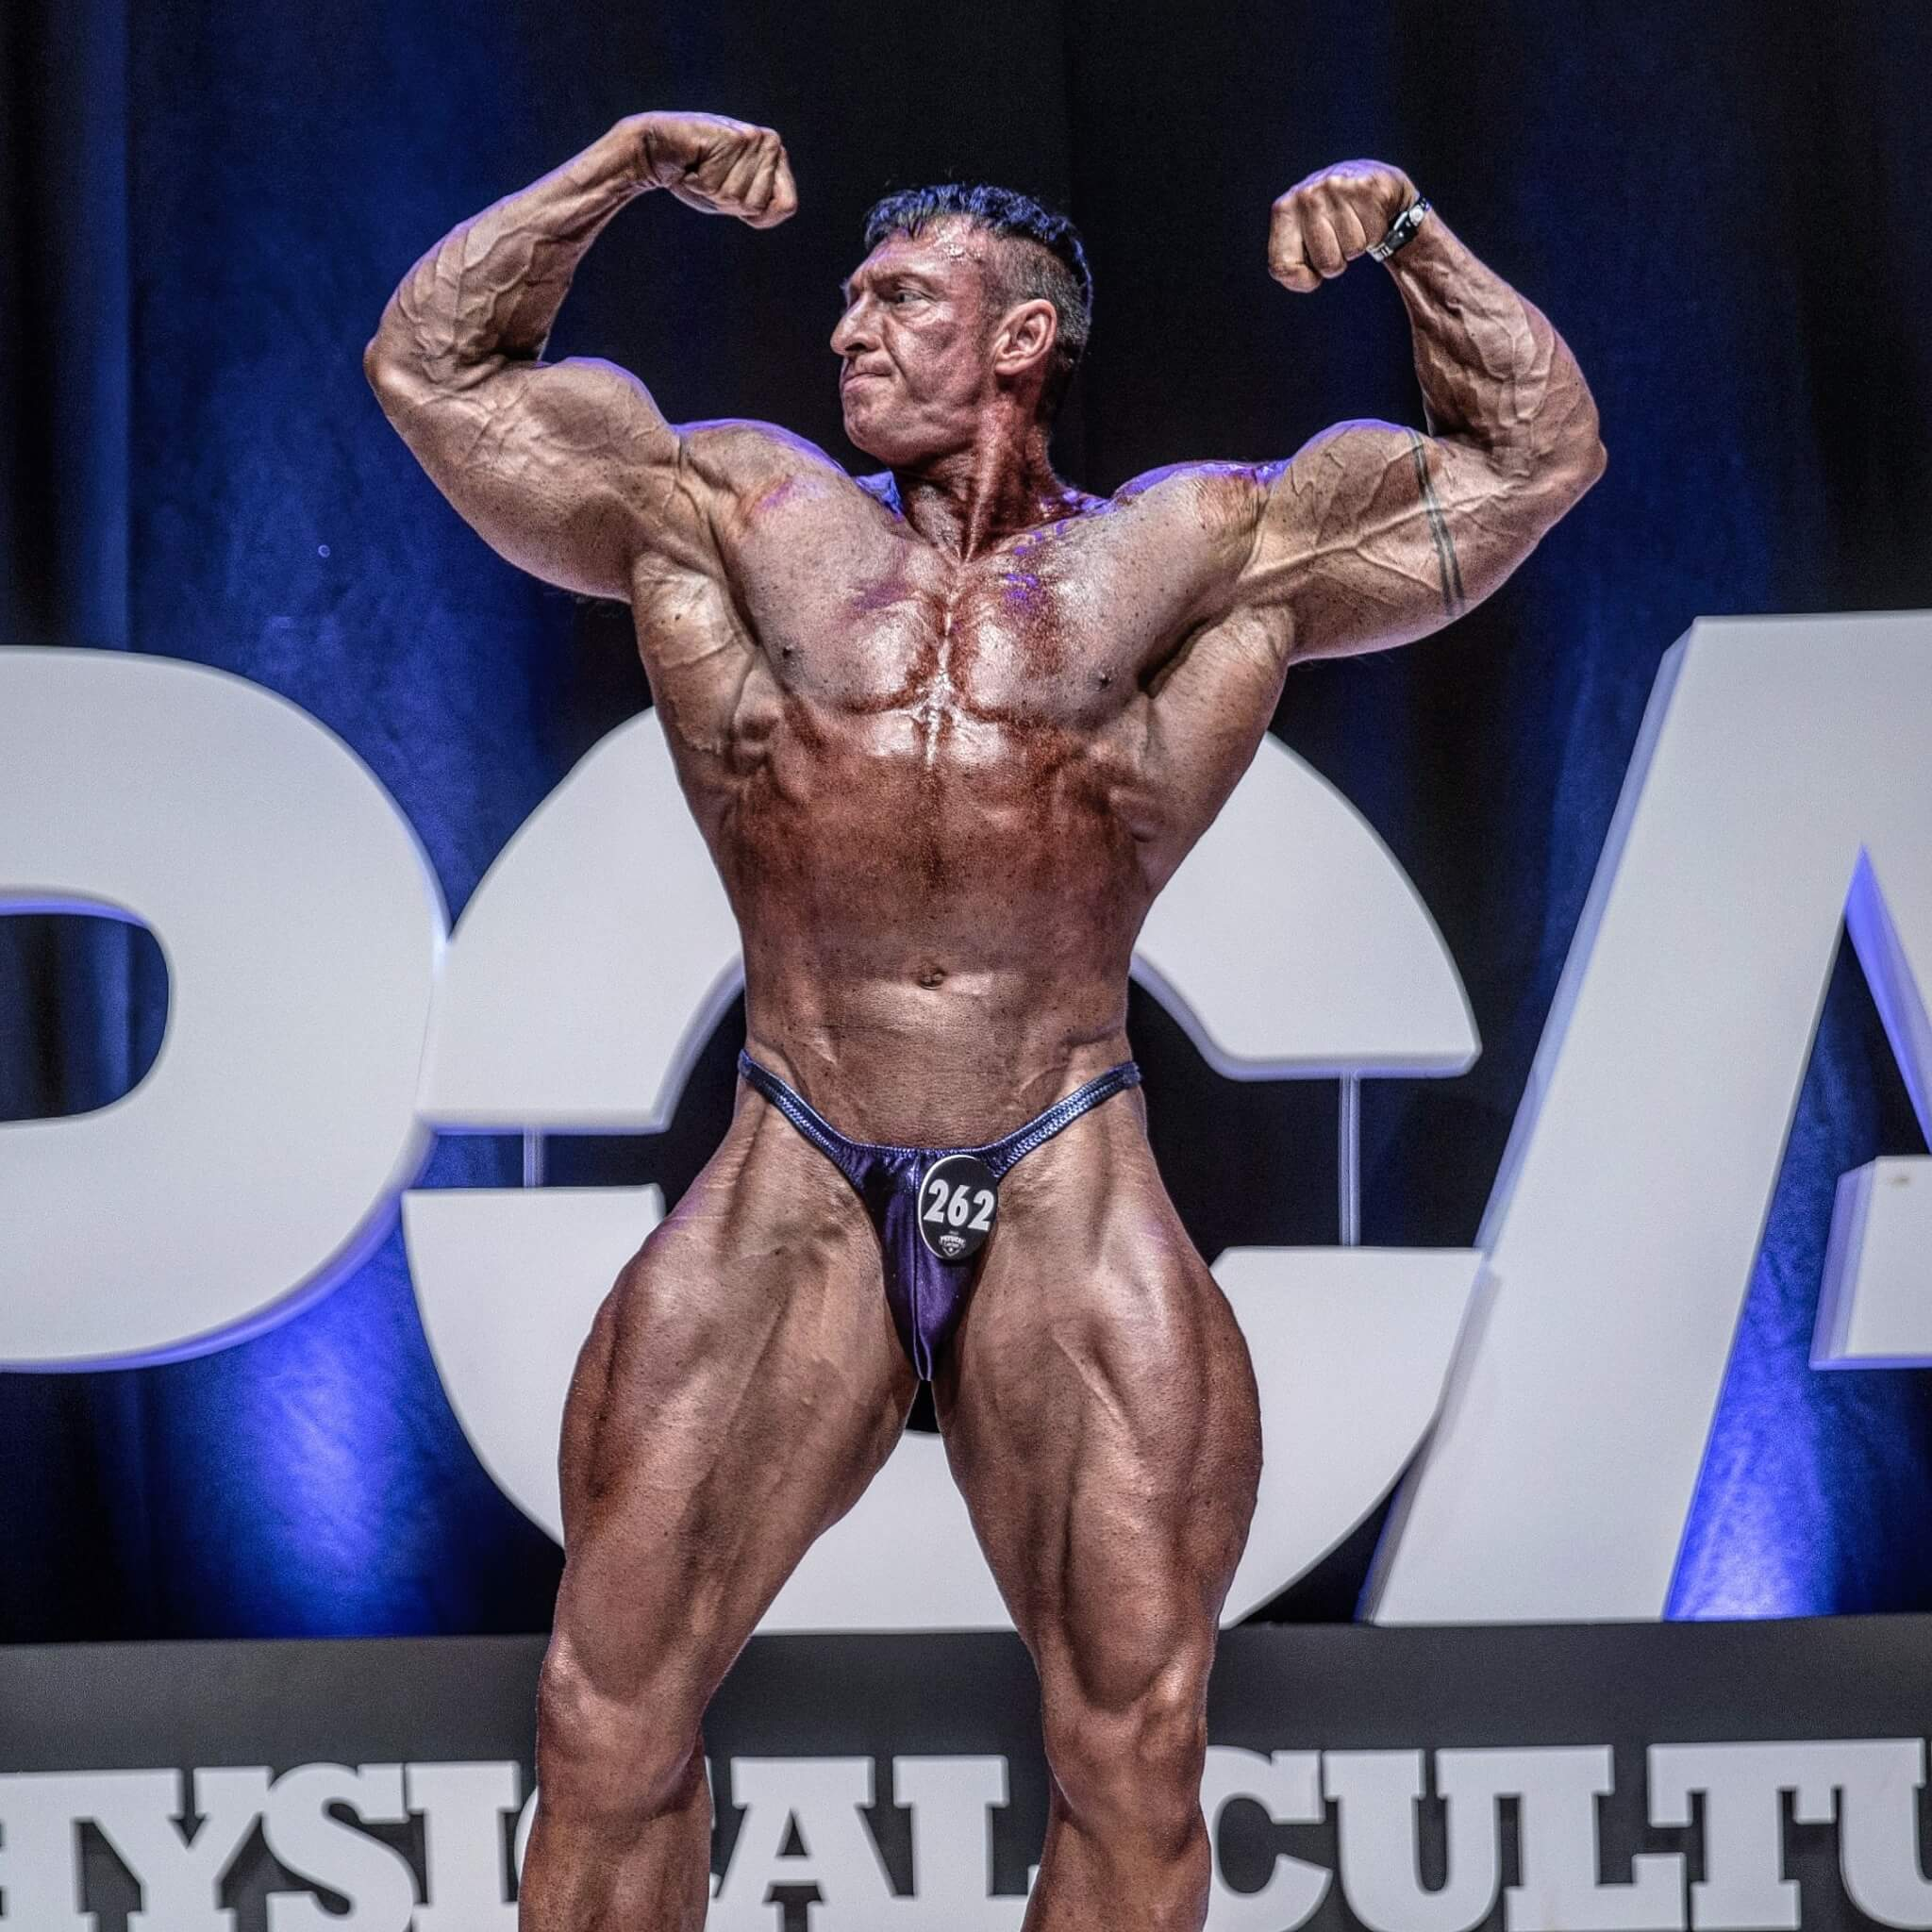 The Evolution Of low-carb bodybuilding